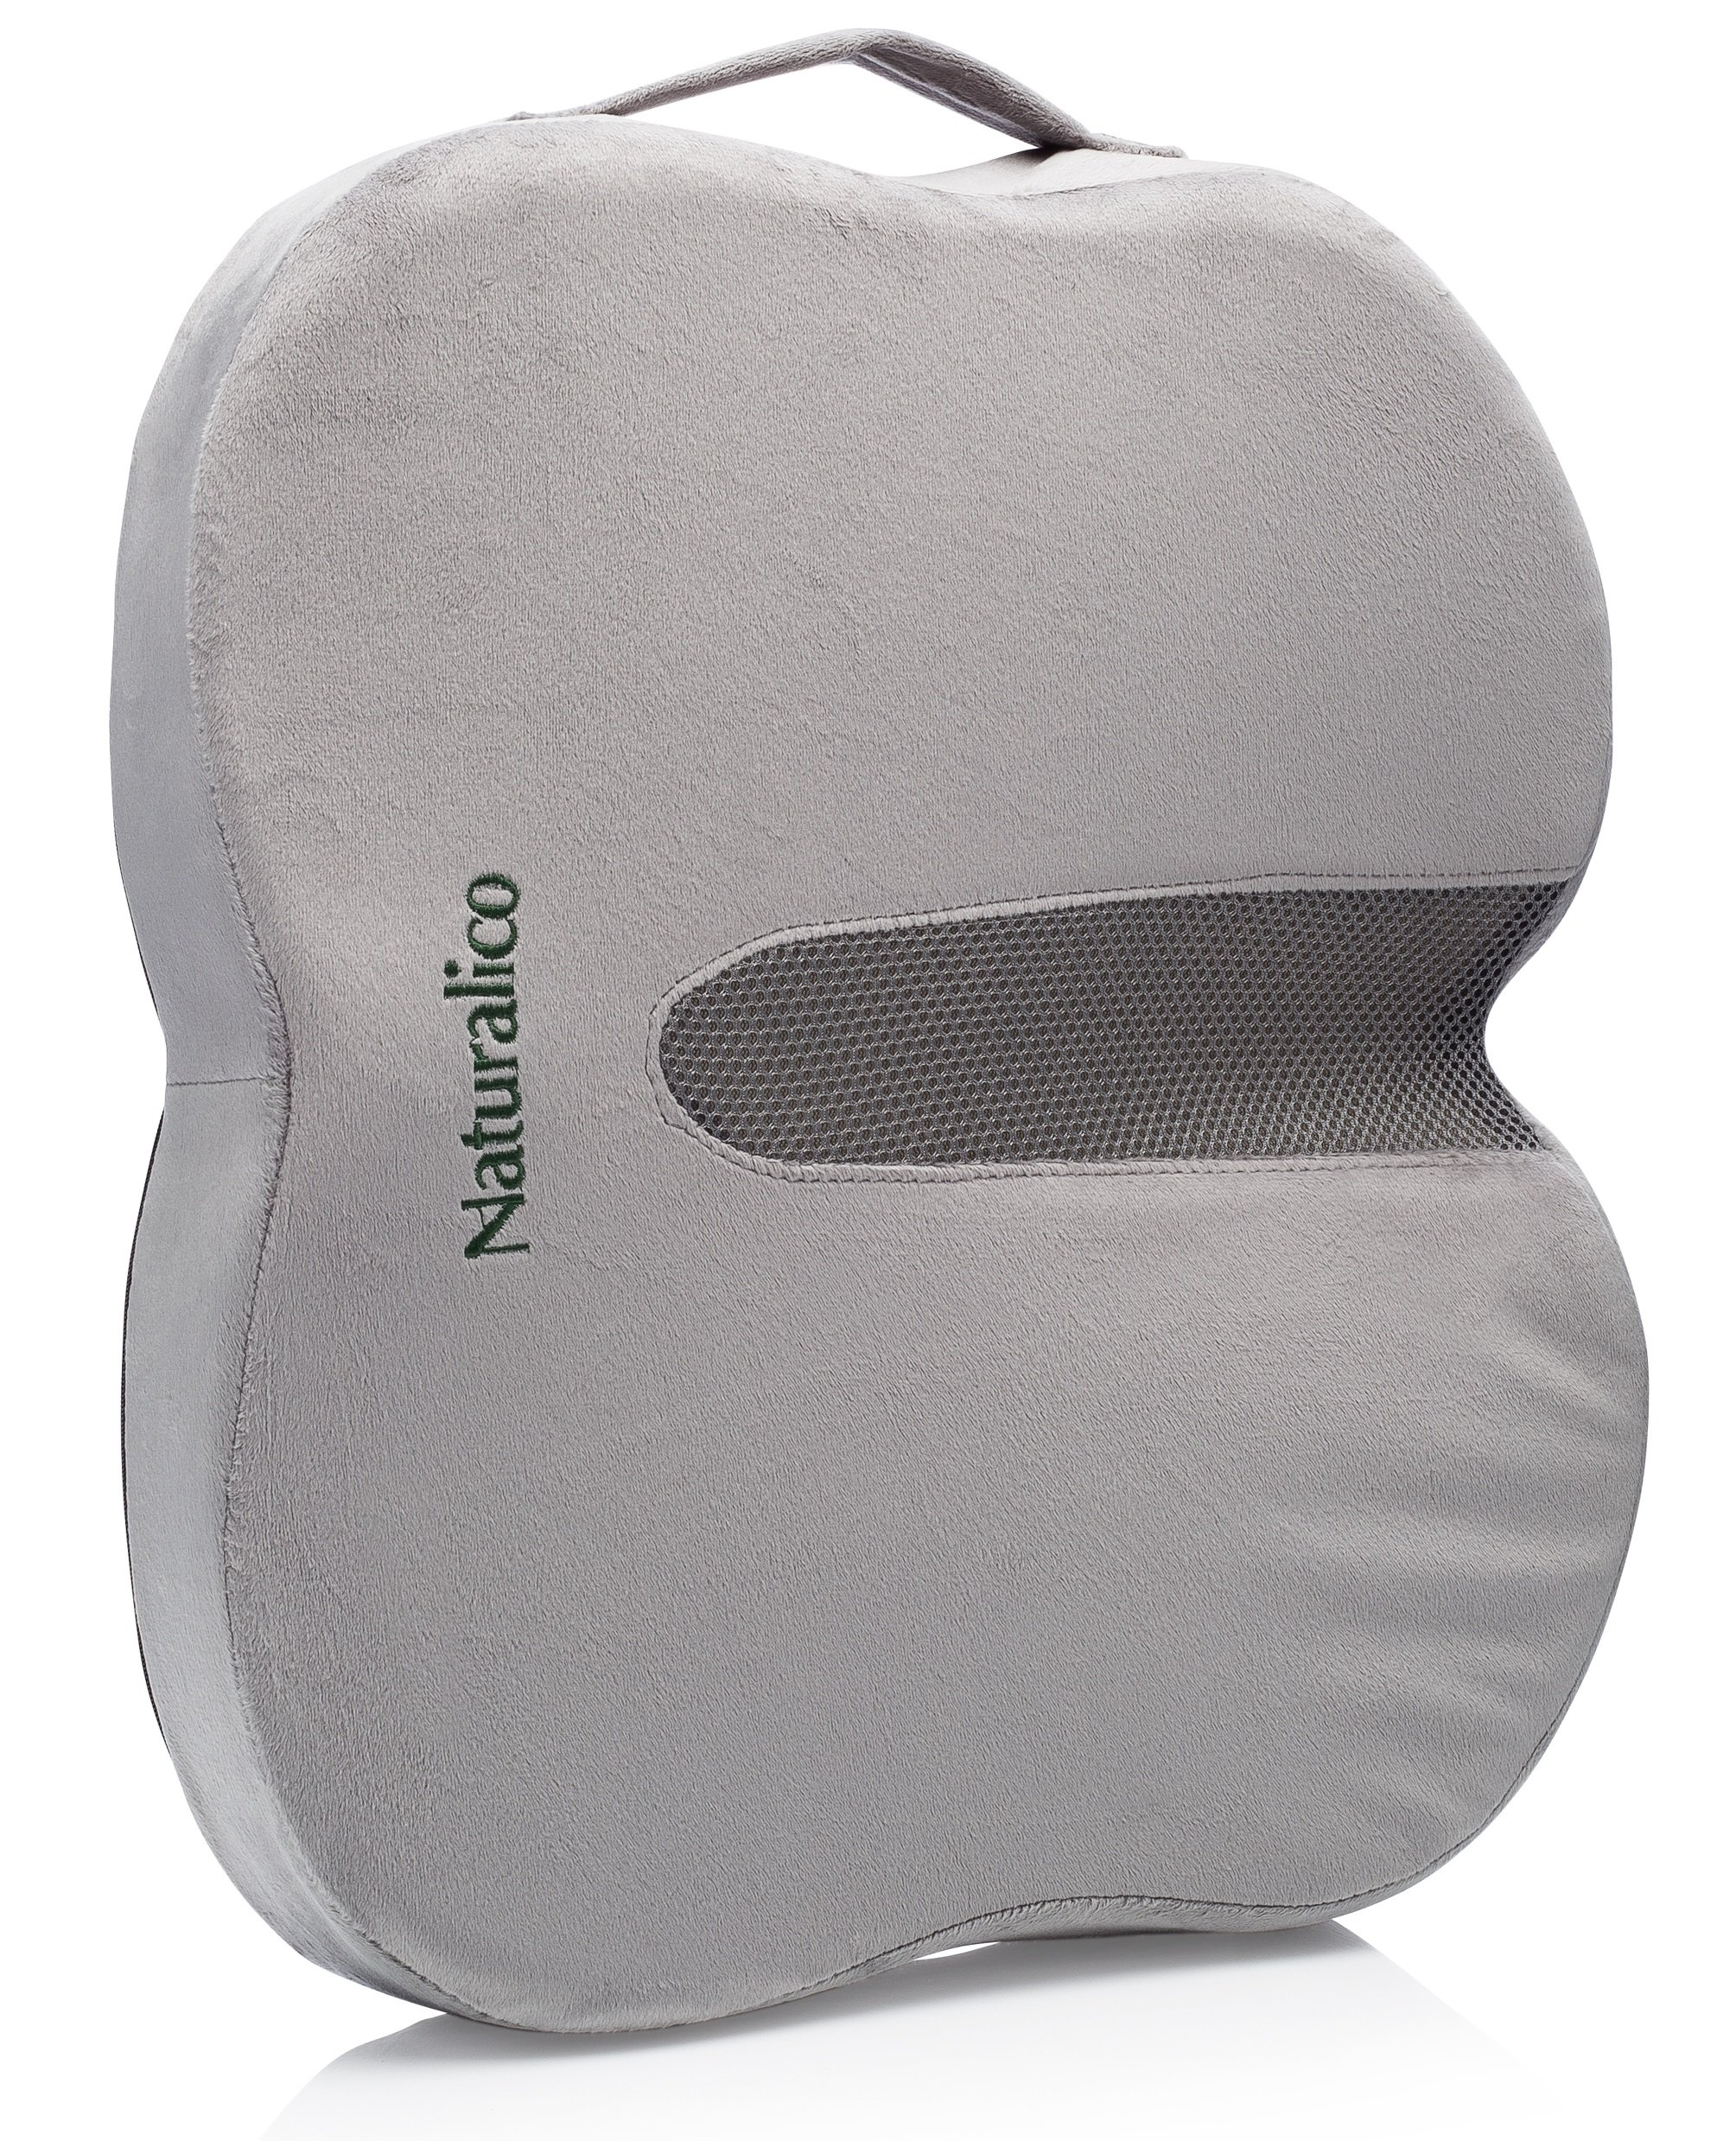 Naturalico Memory Foam Seat Cushion With Cooling Pad   Universal Car,  Office Chair, Vehicle